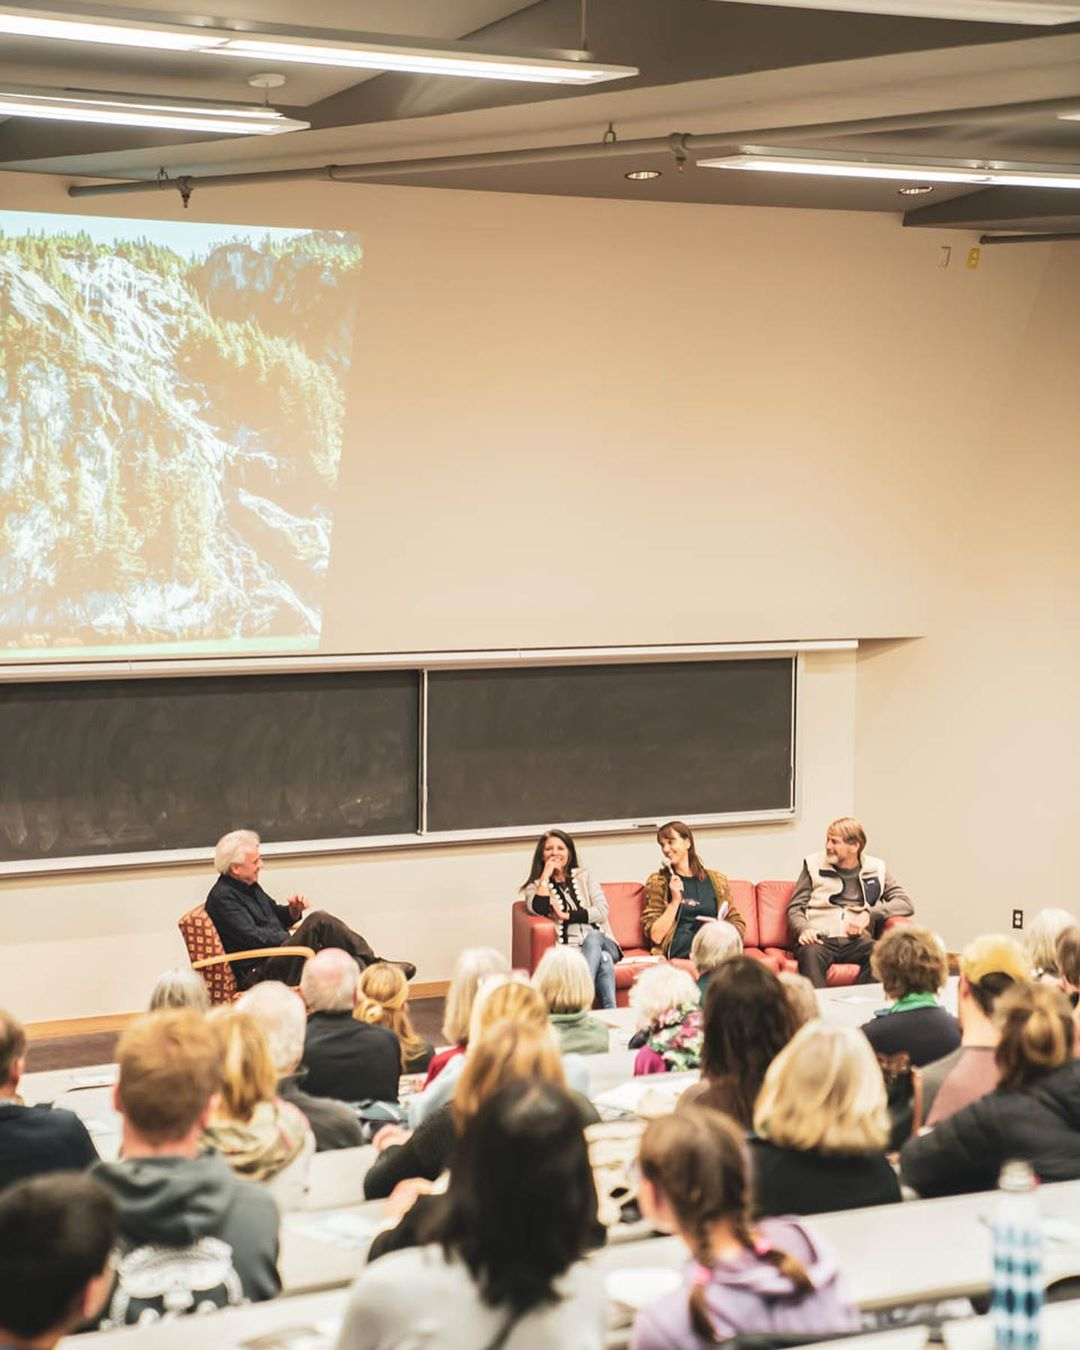 Partial picture of rainforest visible on a projected slide on the wall while four speakers sit below in front of an audience in a medium size room